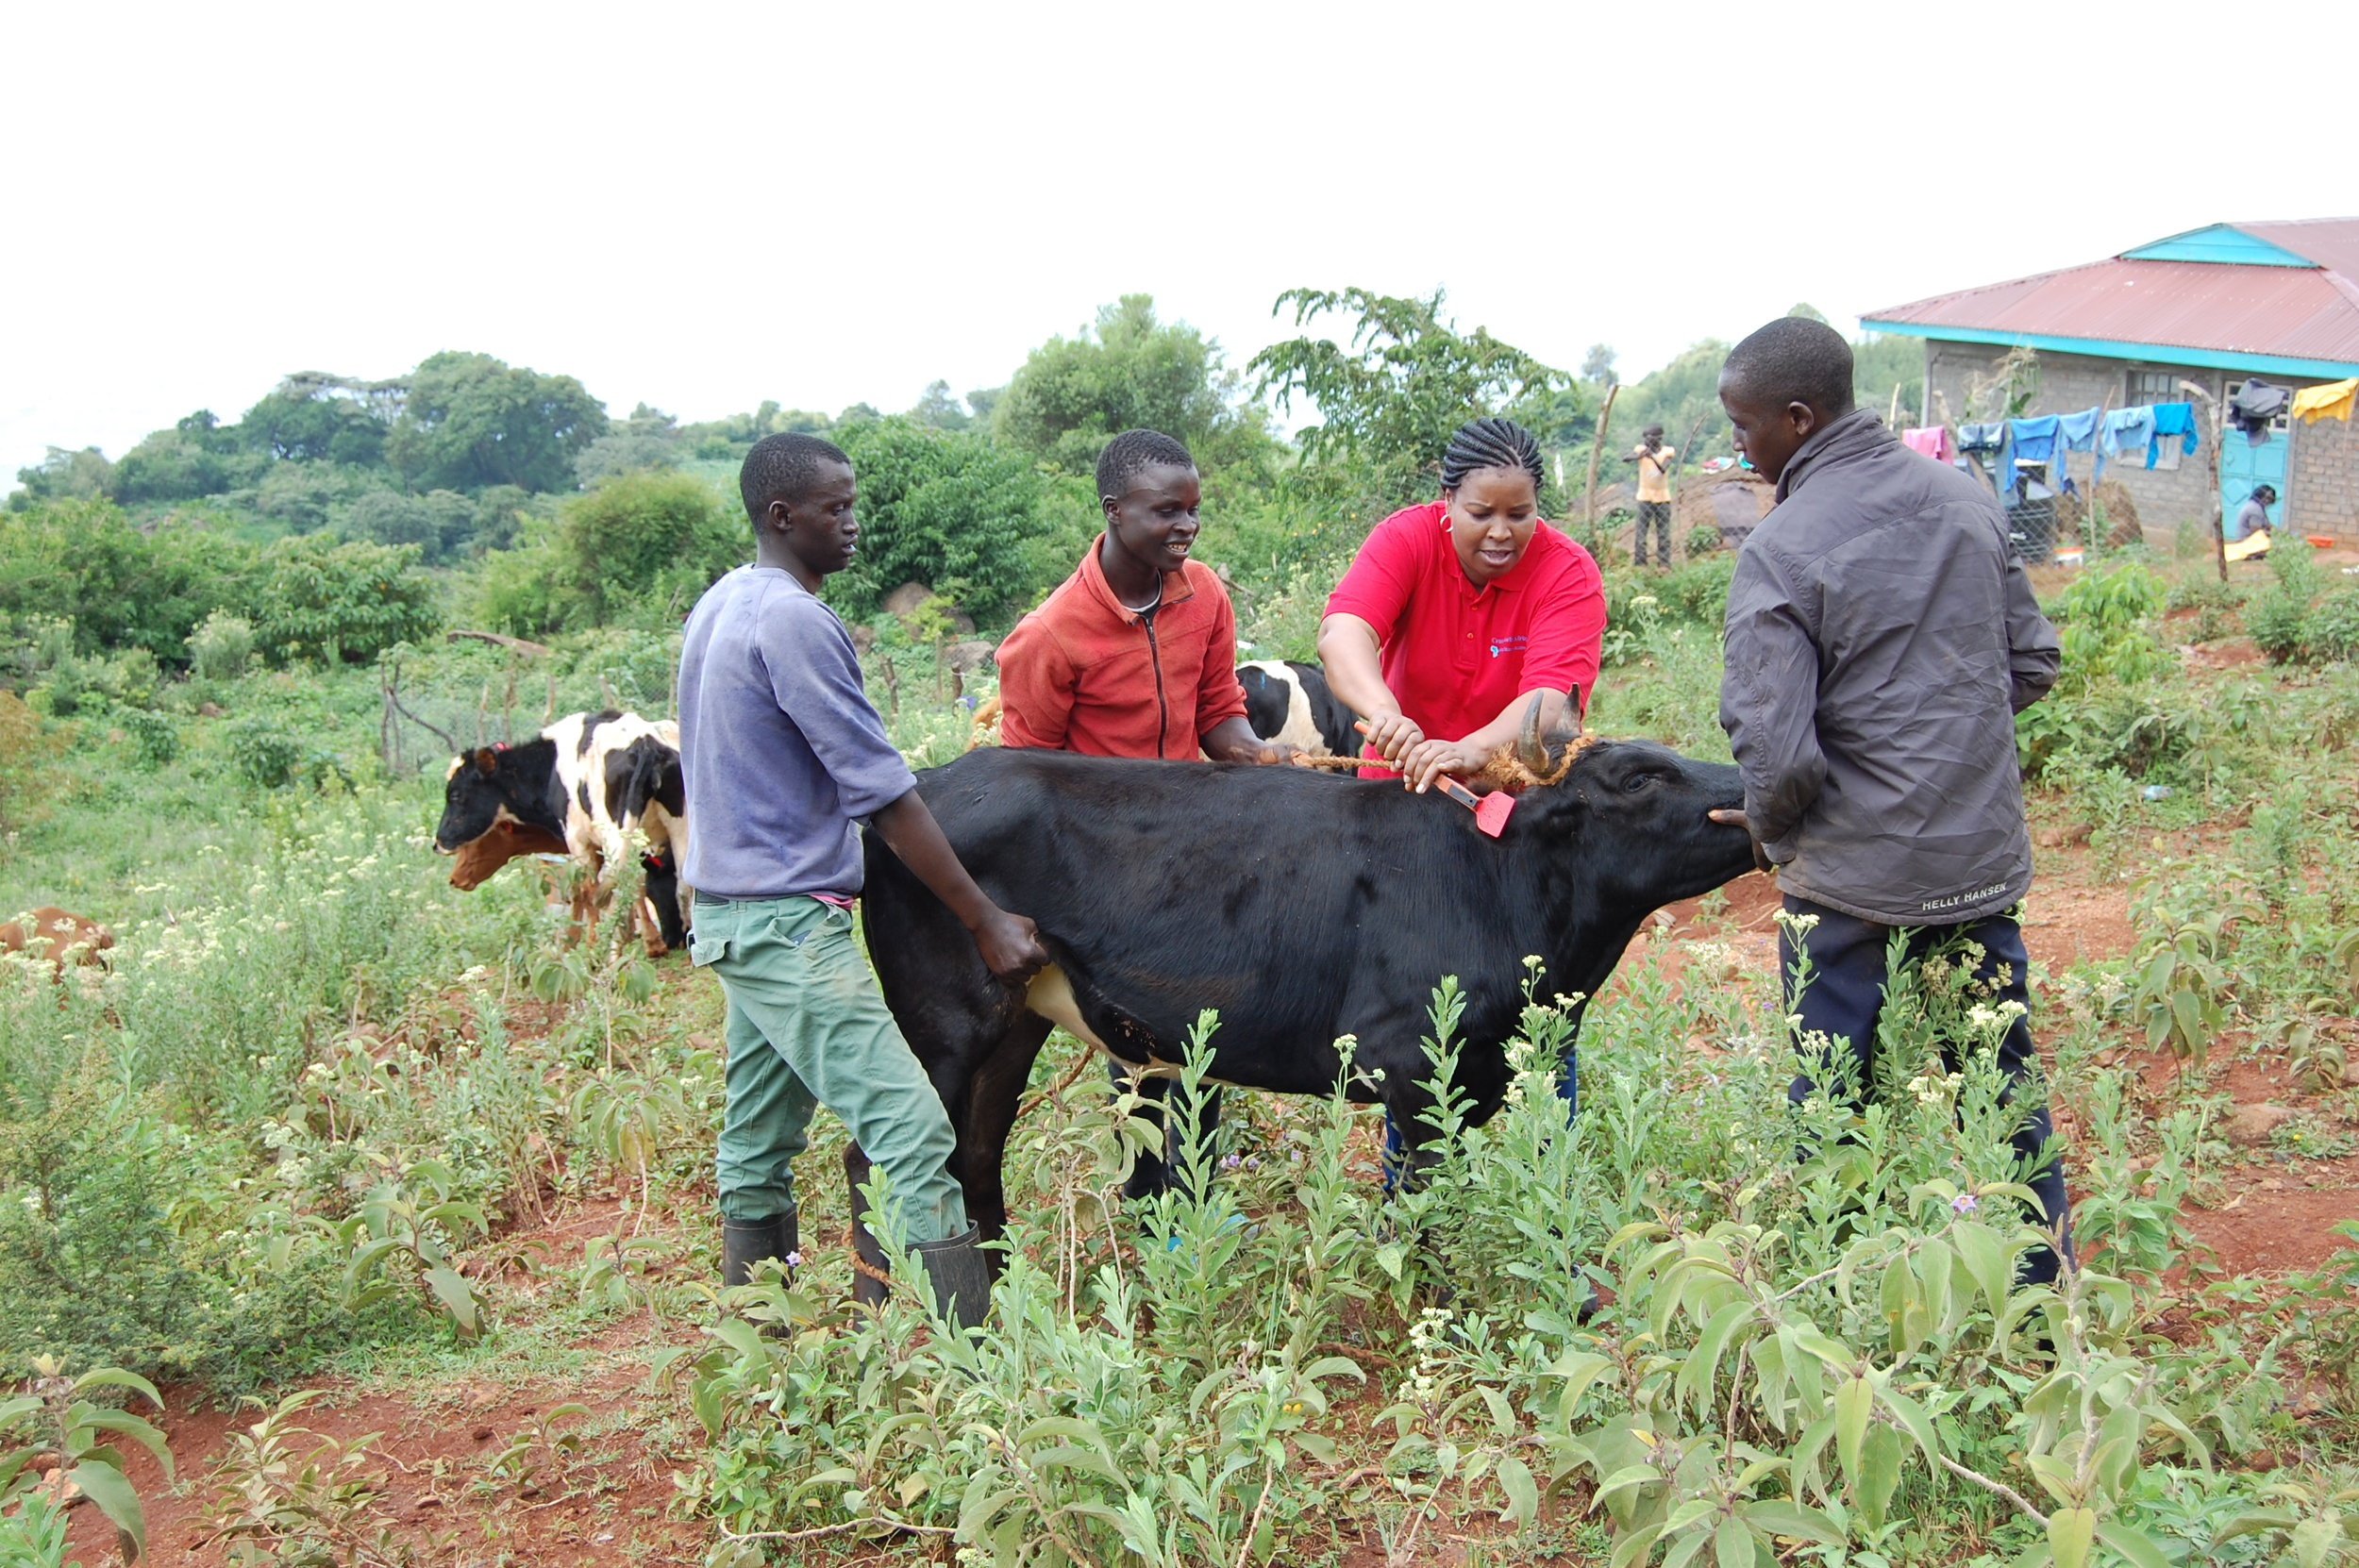 Dr. Benadette Tiony tags 1 of the 14 Cross World Africa cows being donated in the valley.